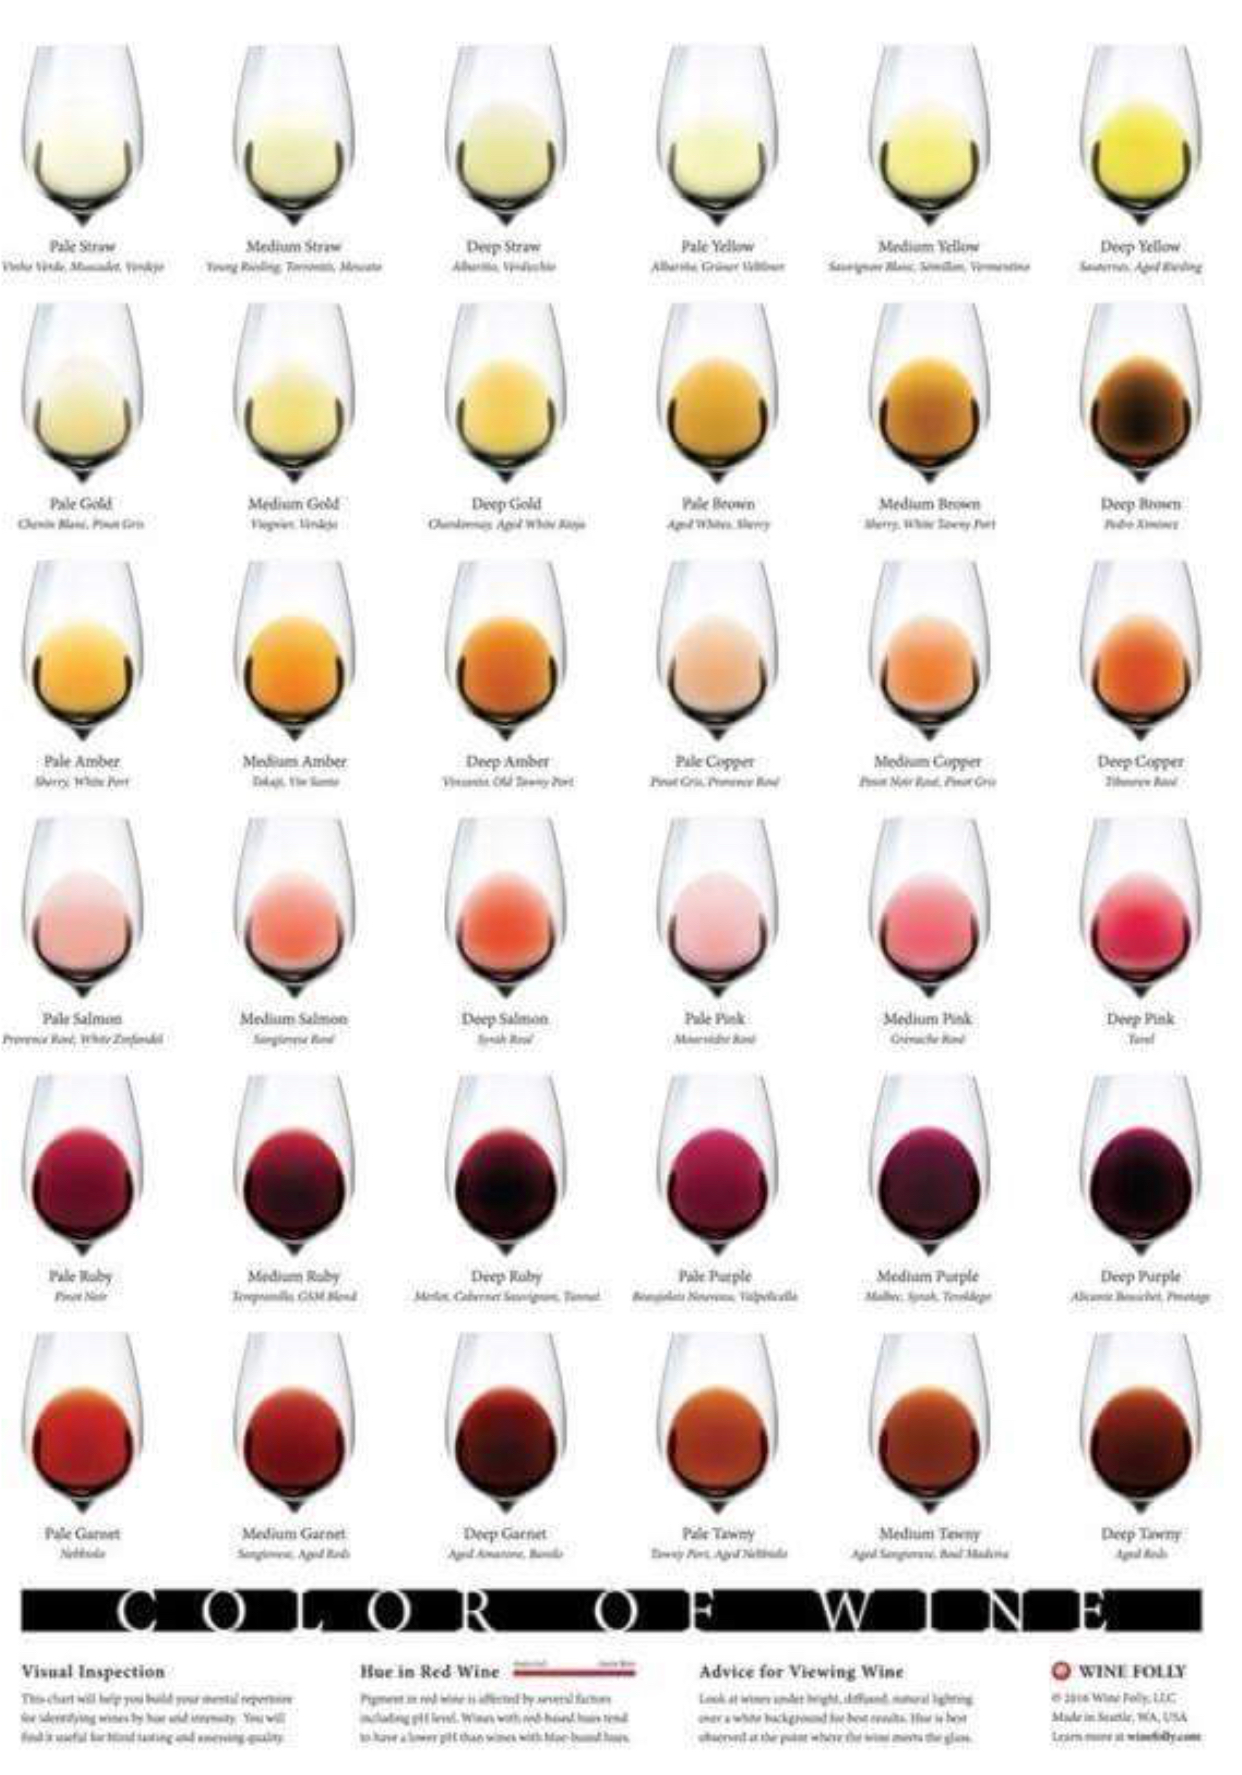 The color attributes of wine are as varied as people...they're like individual personalities